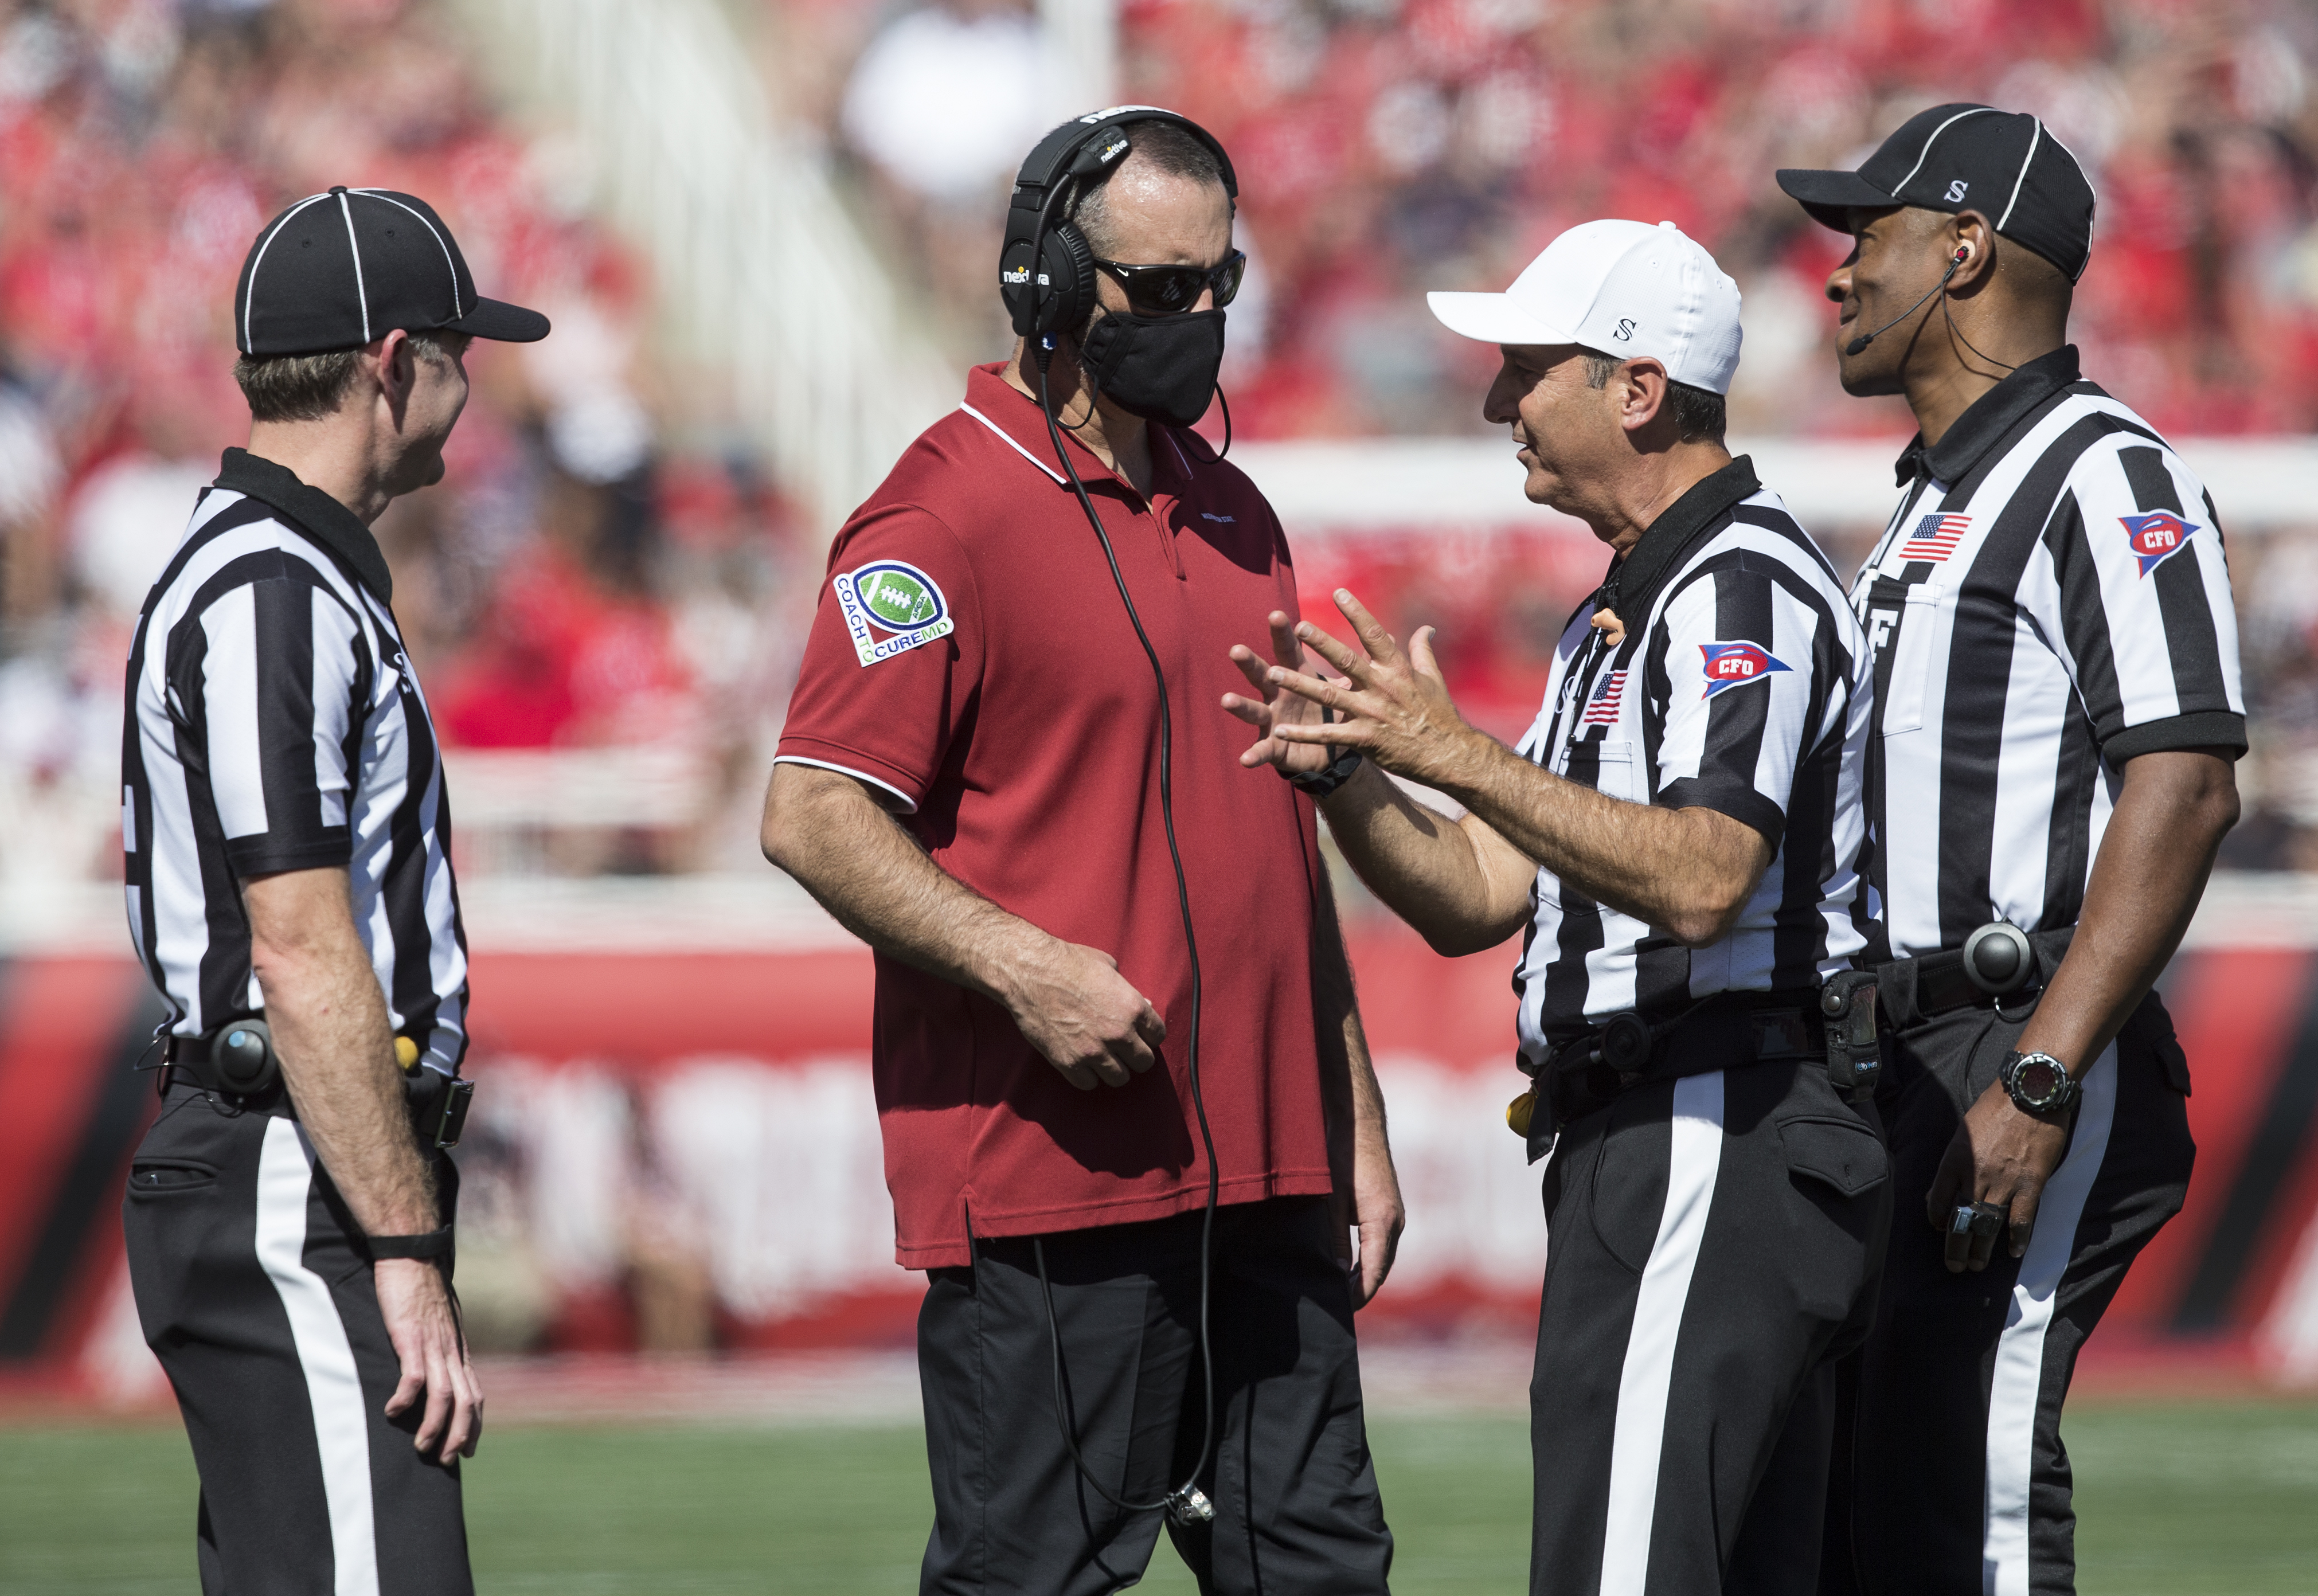 Nick Rolovich head coach of the Washington State Cougars talks with officials during their game against the Utah Utes September 25, 2021 at Rice Eccles Stadium in Salt Lake City, Utah.